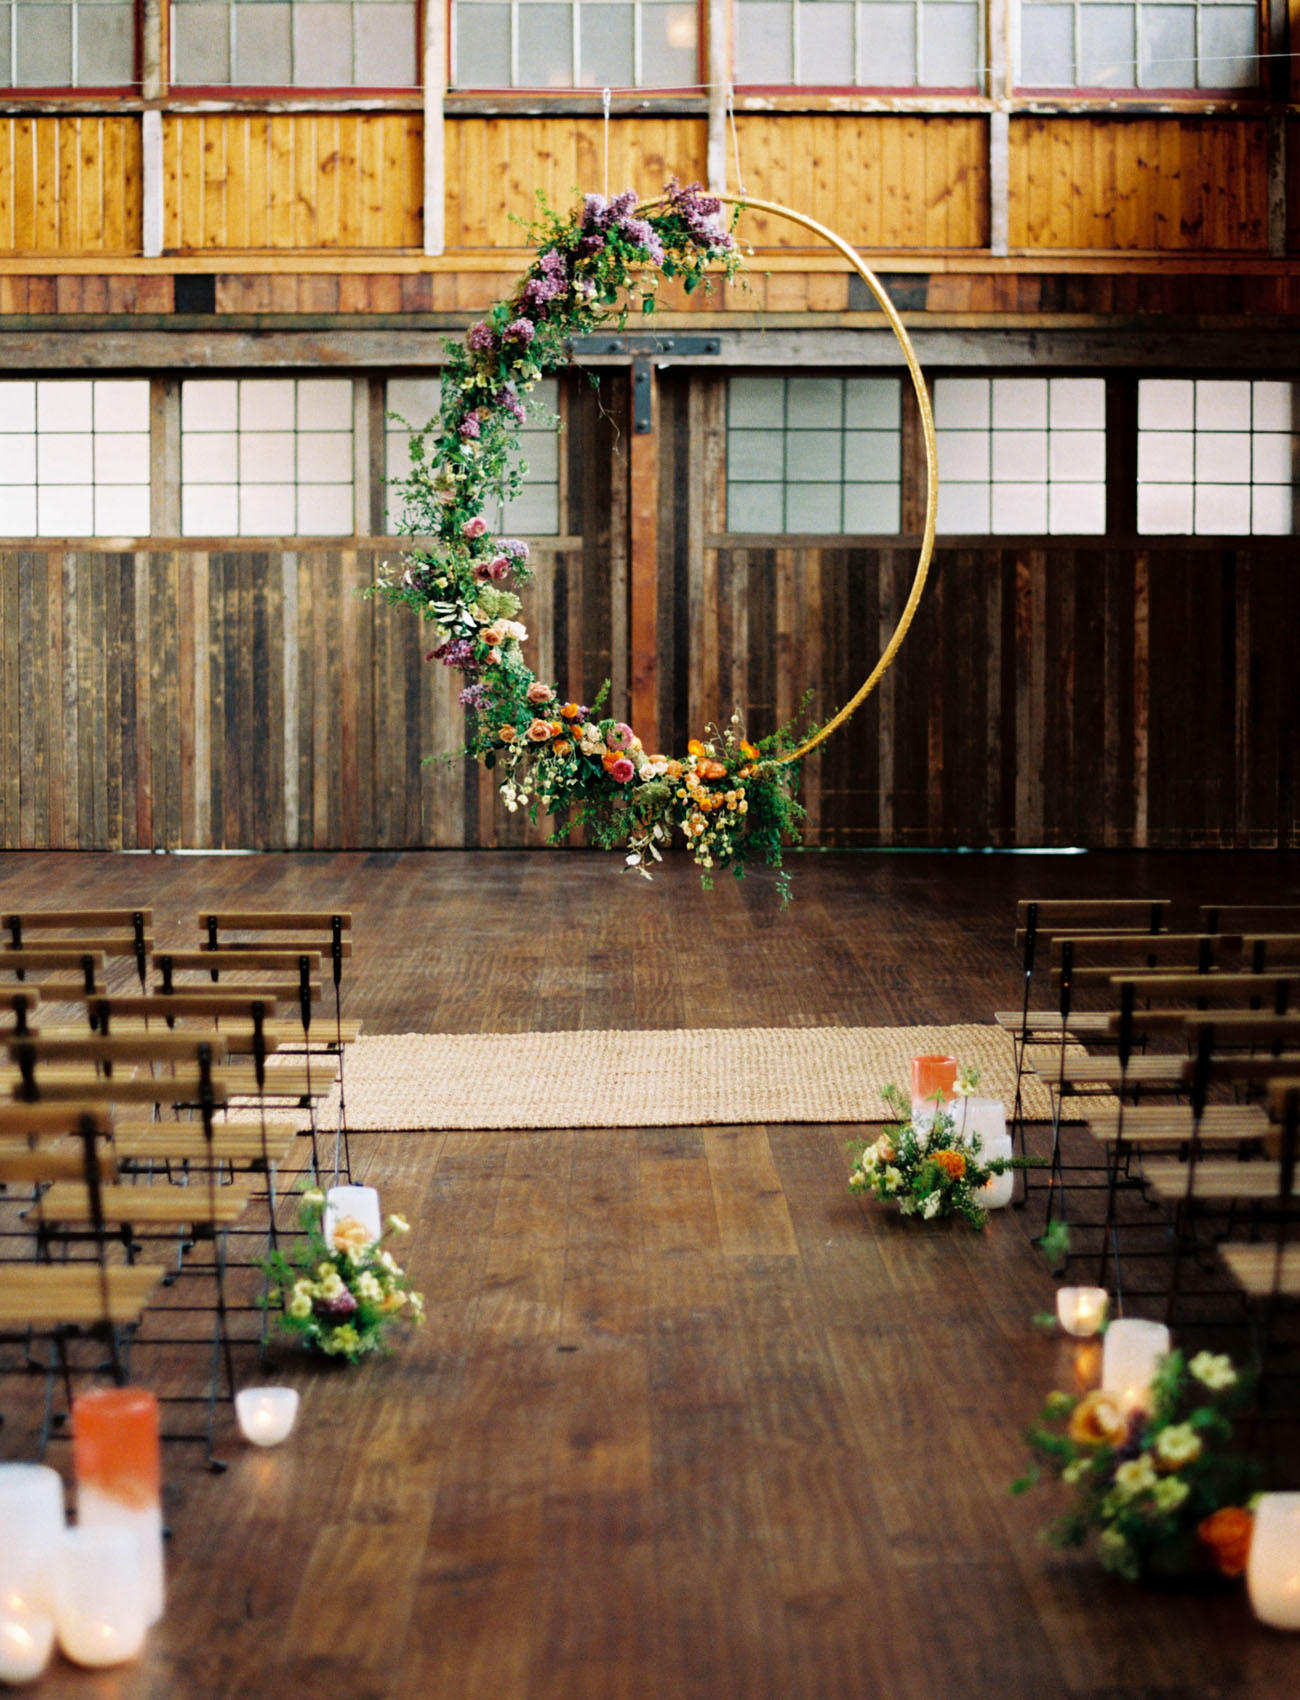 Flower hoop wedding dance-floor florist idea